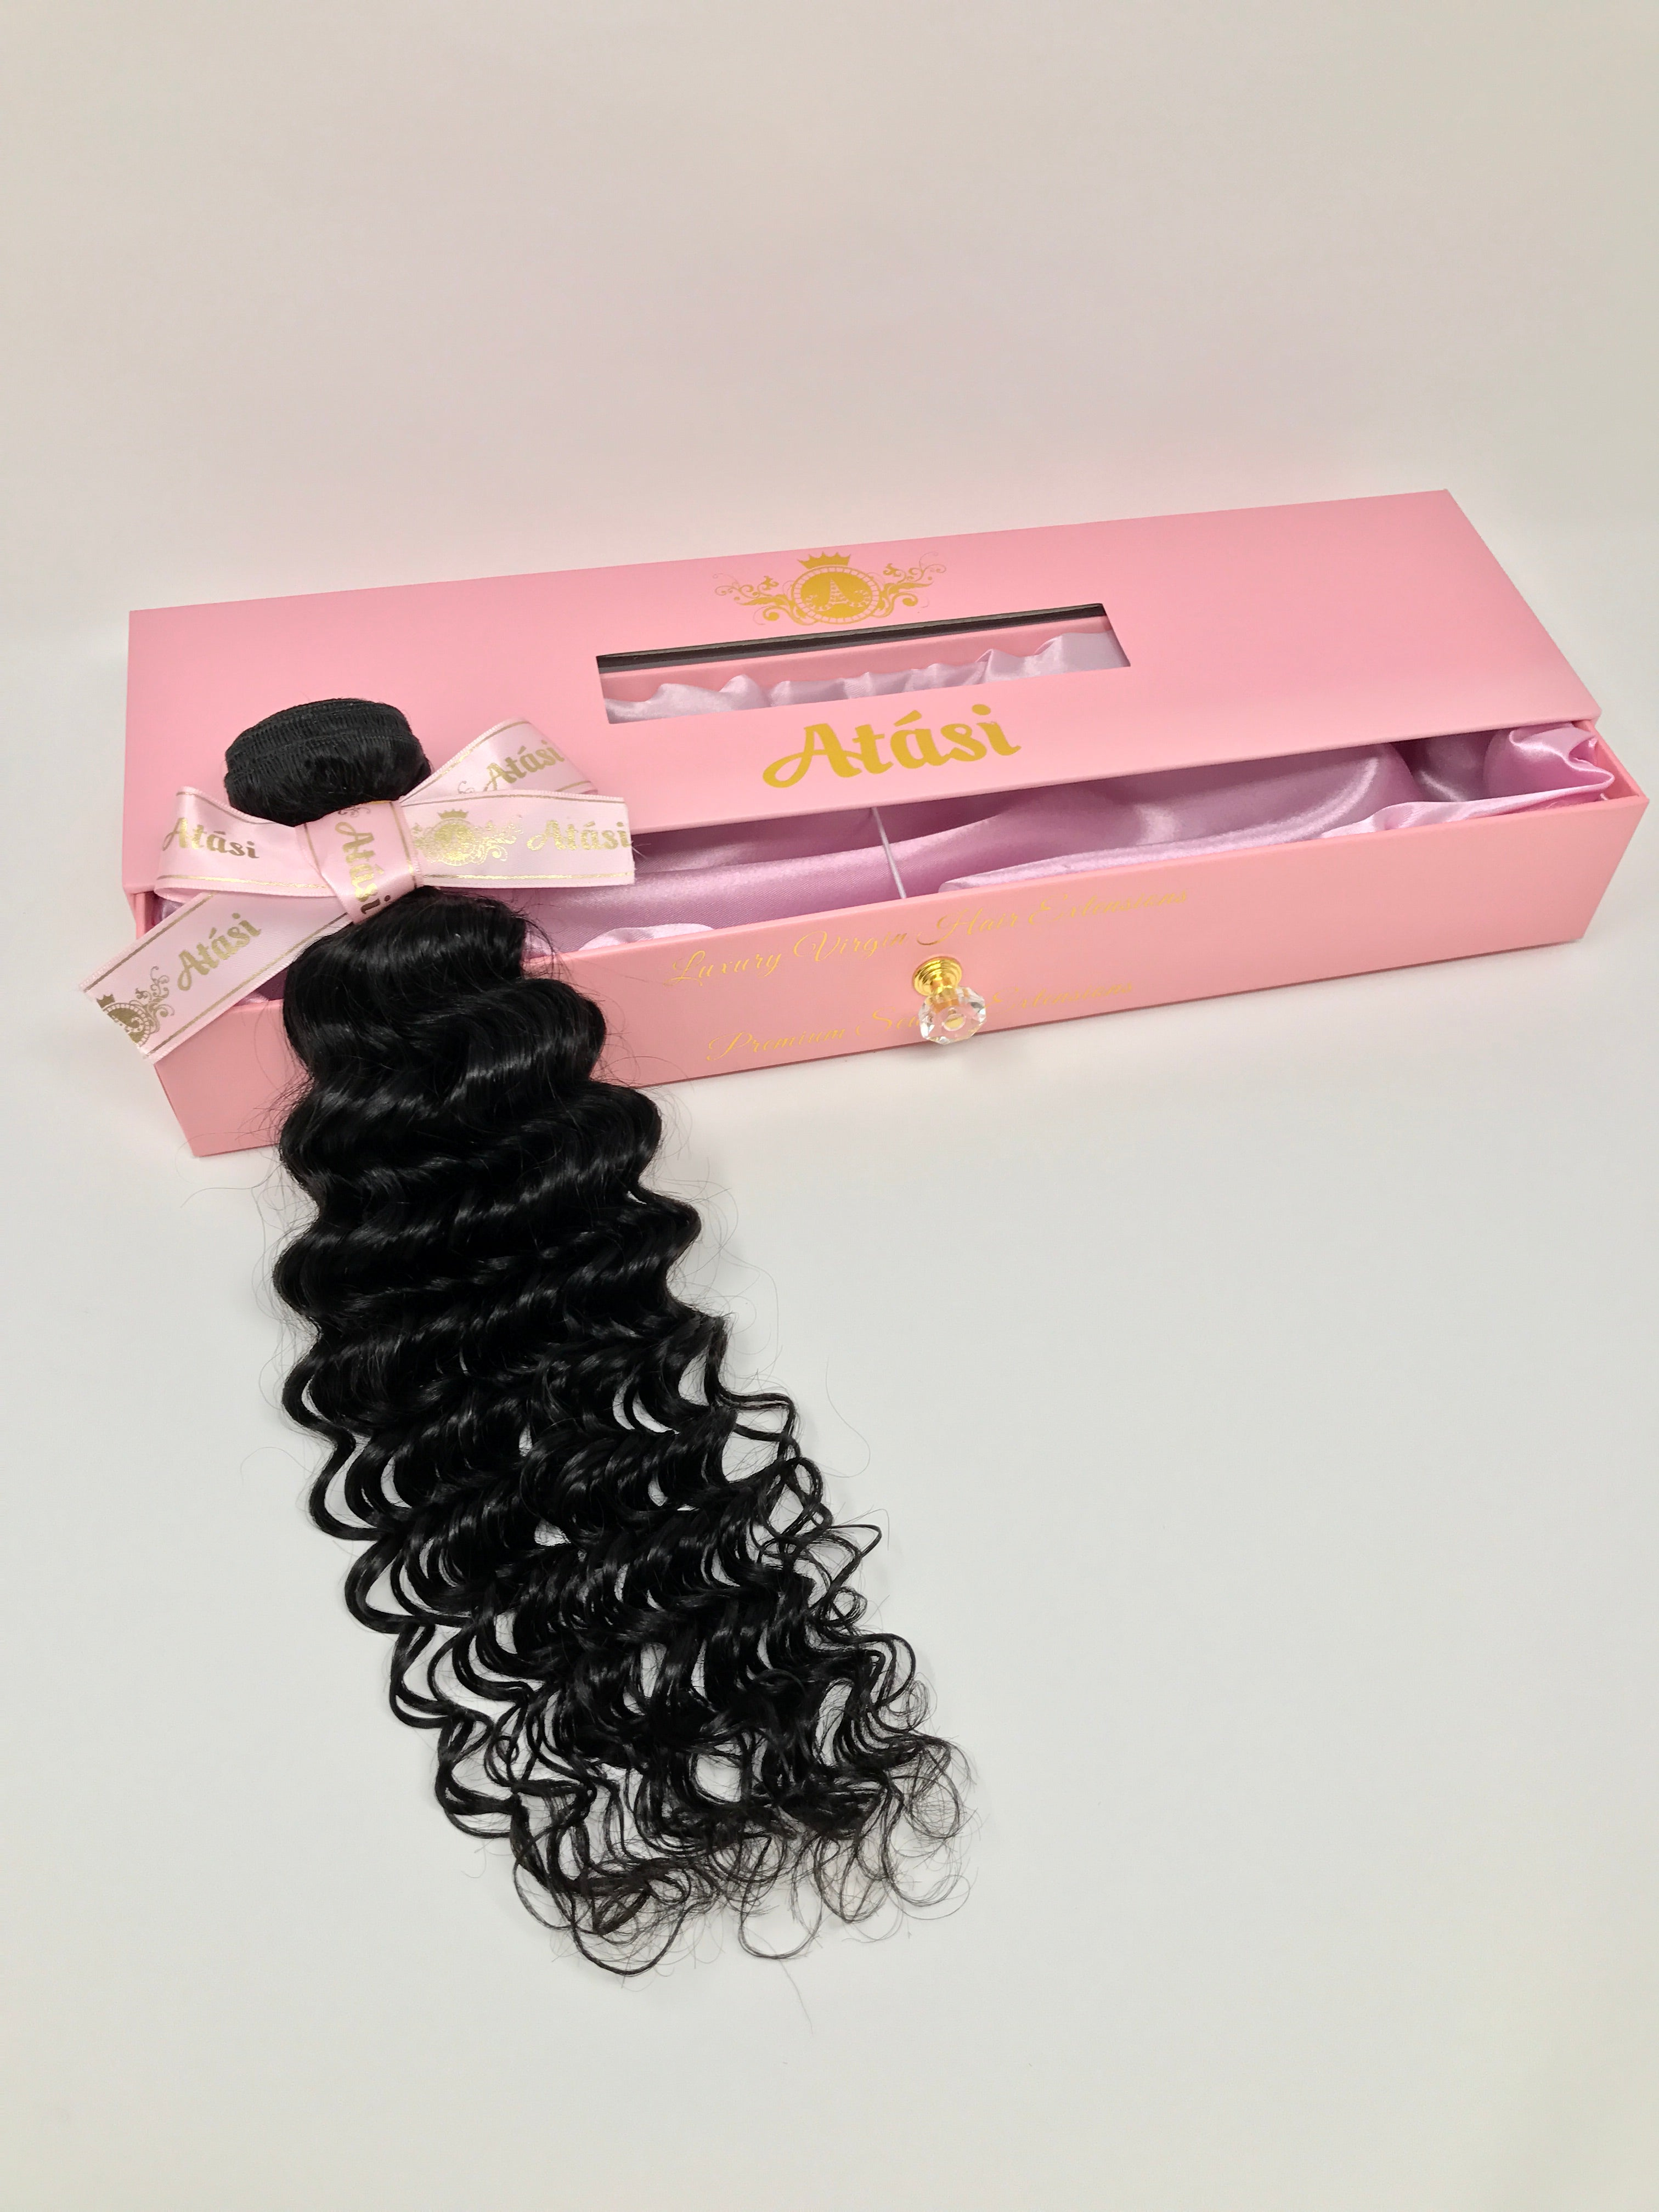 $18+ | 100% Unprocessed Virgin Human Hair | 10A Curly deep wave Bundles